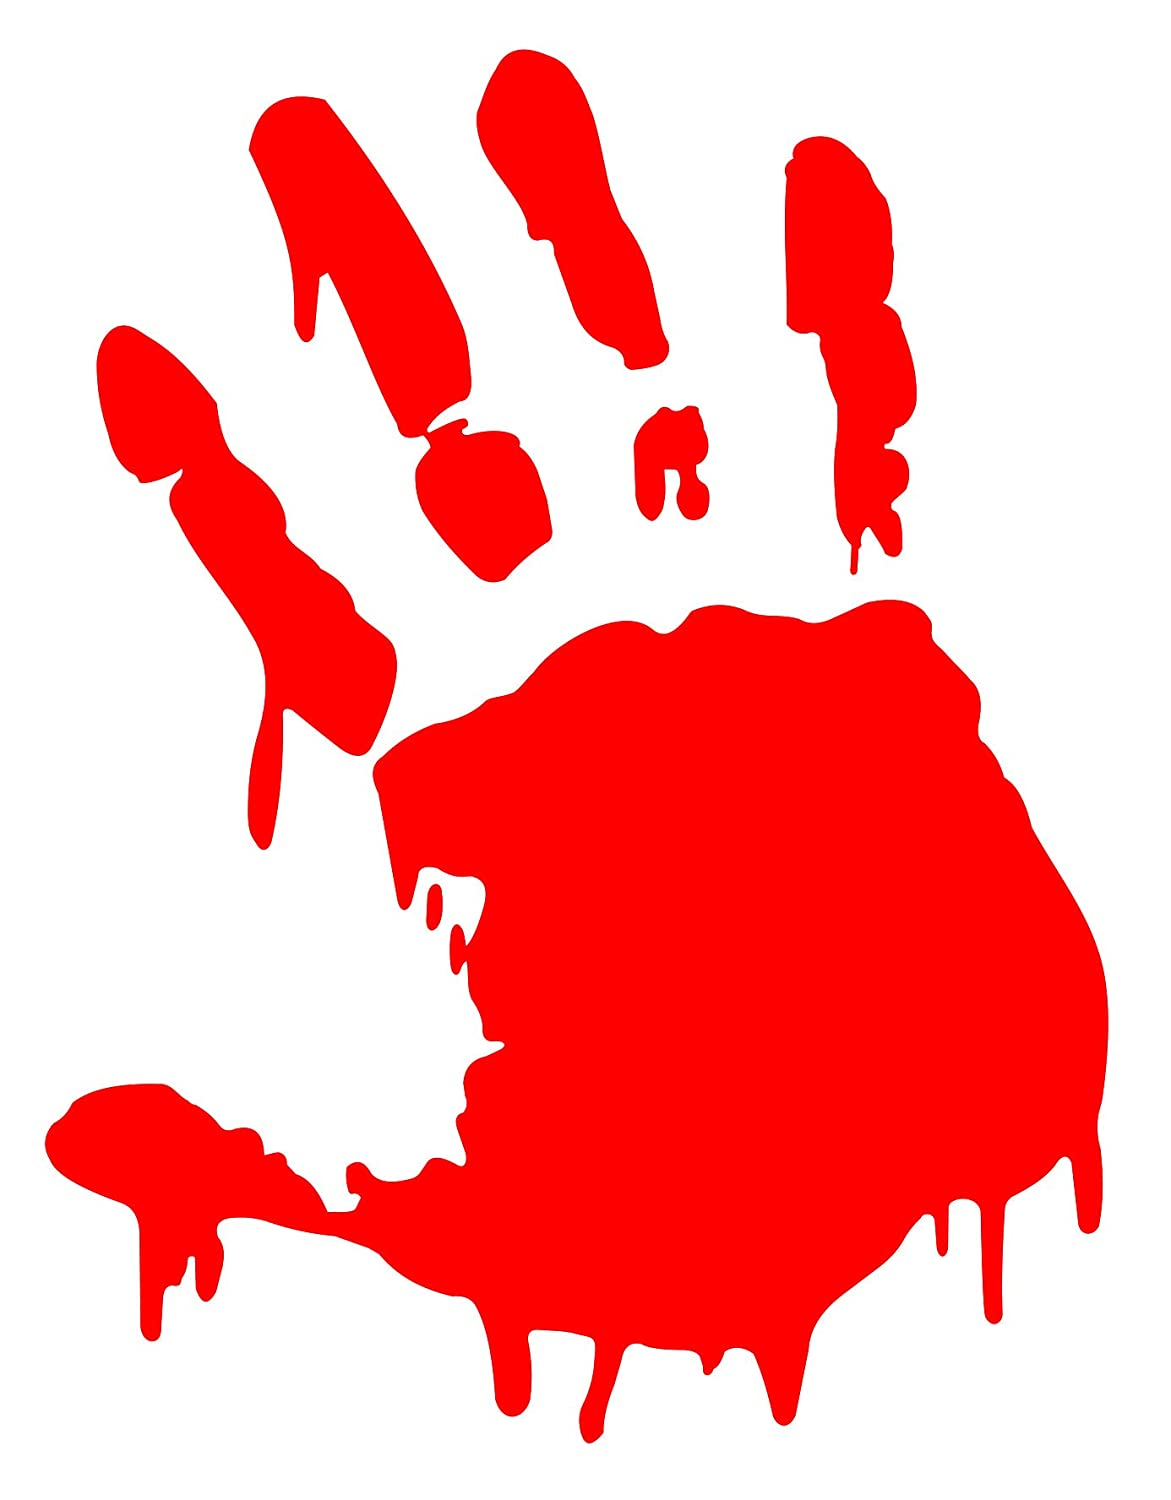 amazoncom bloody zombie hand printright hand 55 red ikon sign original vinyl decal window sticker notebook laptop wall windows etc - Zombie Pictures To Print